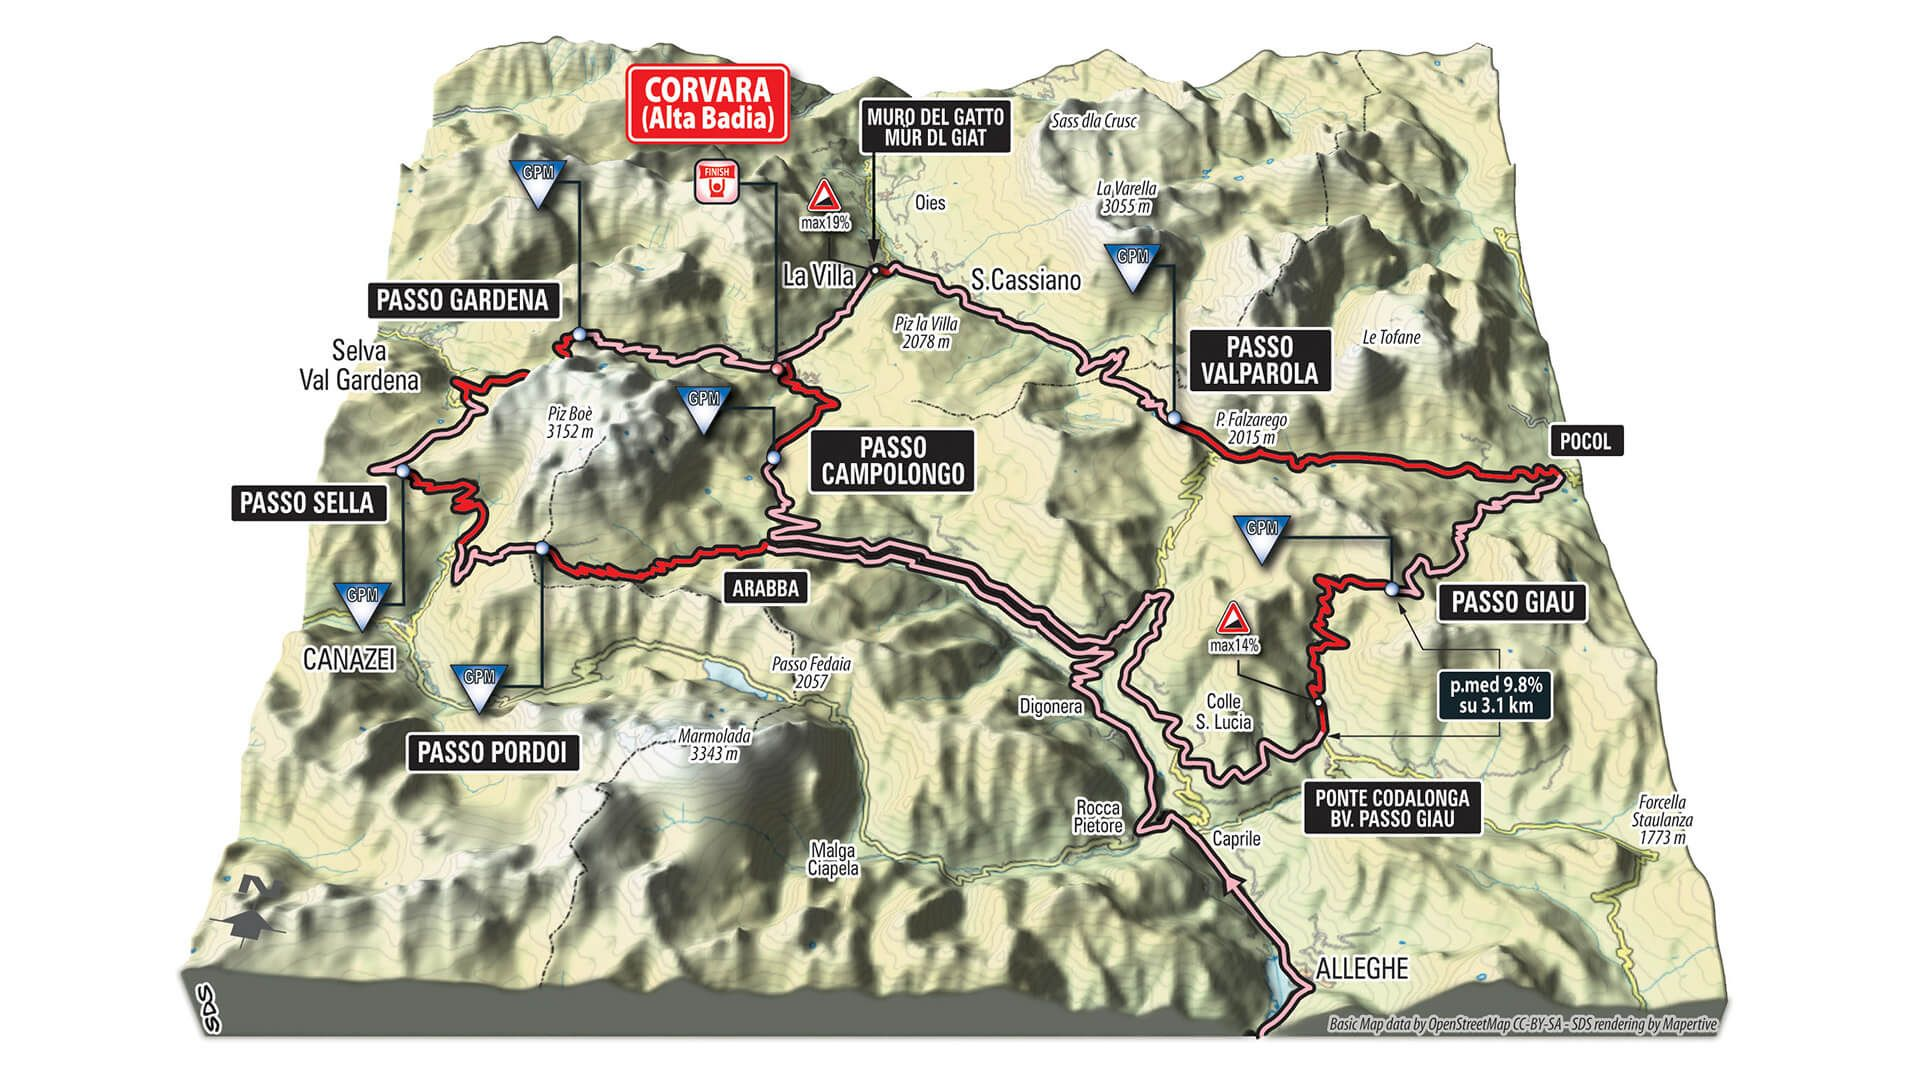 Giro dItalia in Alta Badia Corvara 21 may 2016